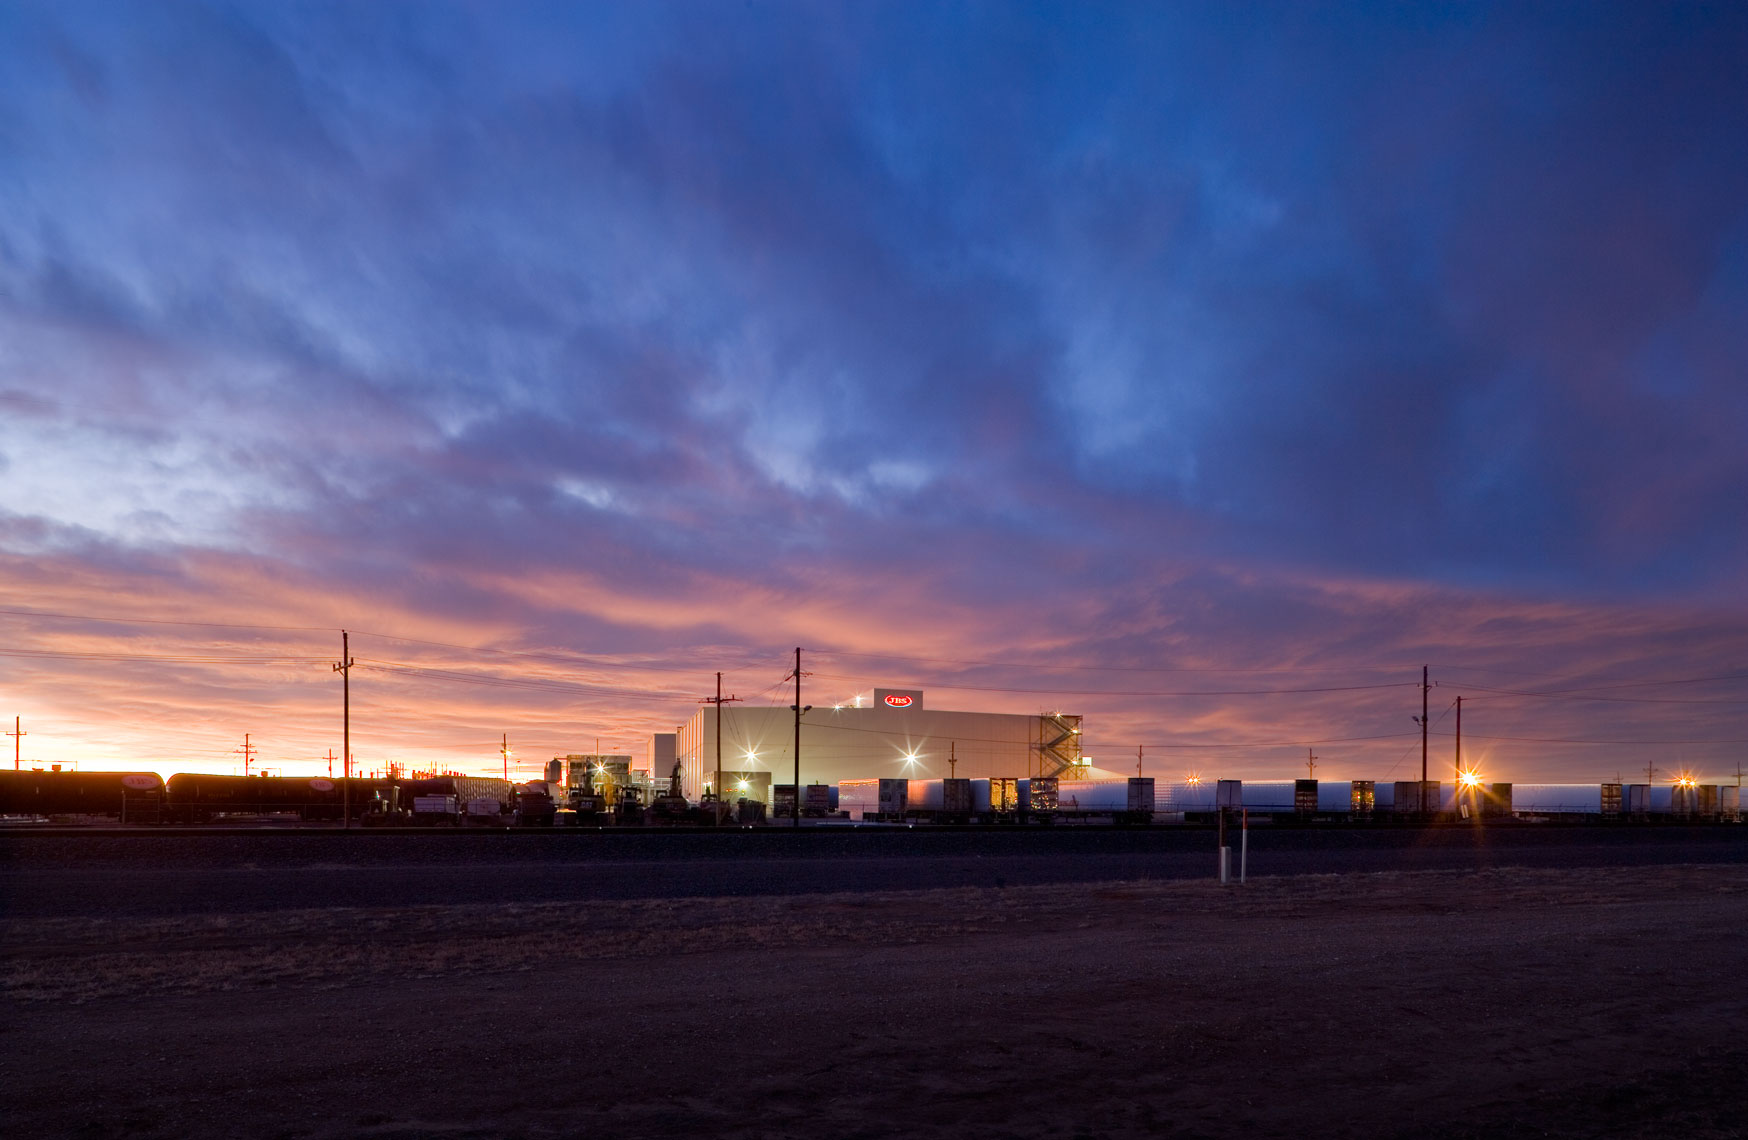 twilight at JBS USA beef processing facility in texas